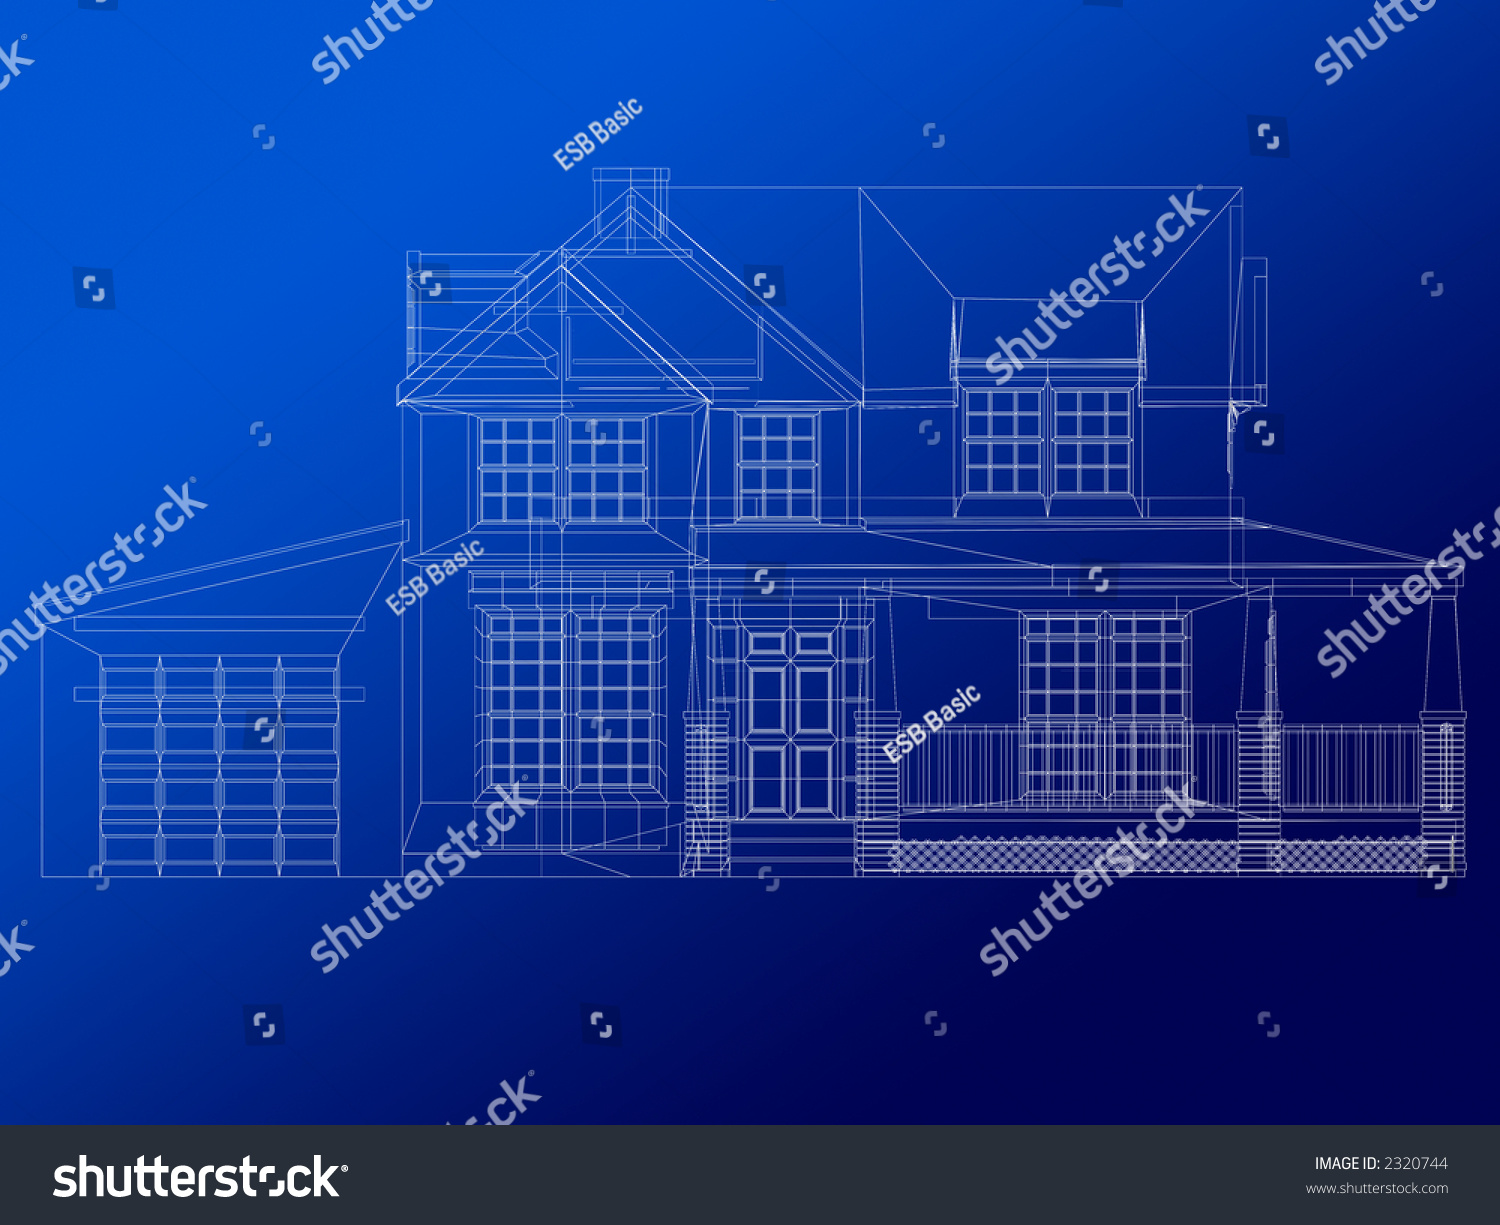 Architecture blueprint house over blue background stock photo architecture blueprint of a house over a blue background malvernweather Images